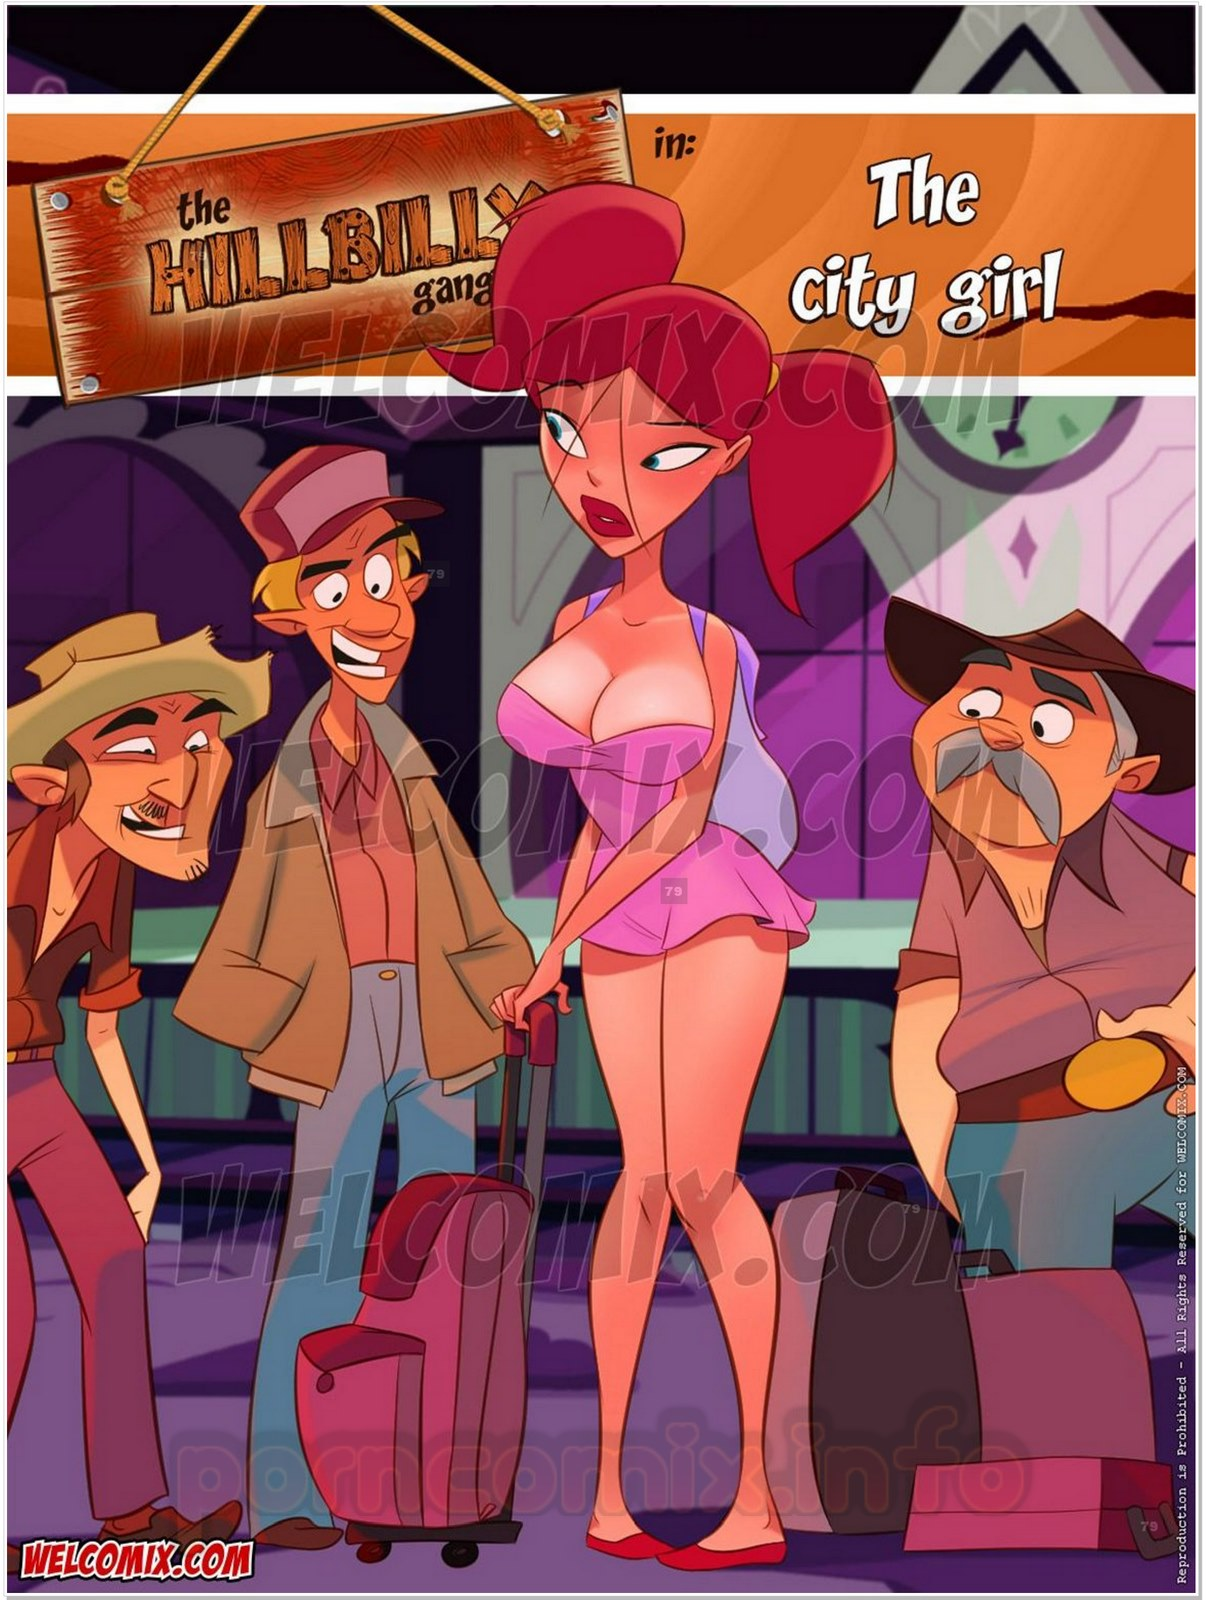 Hillbilly Gang 11- The City Girl- Welcomix porn comics 8 muses